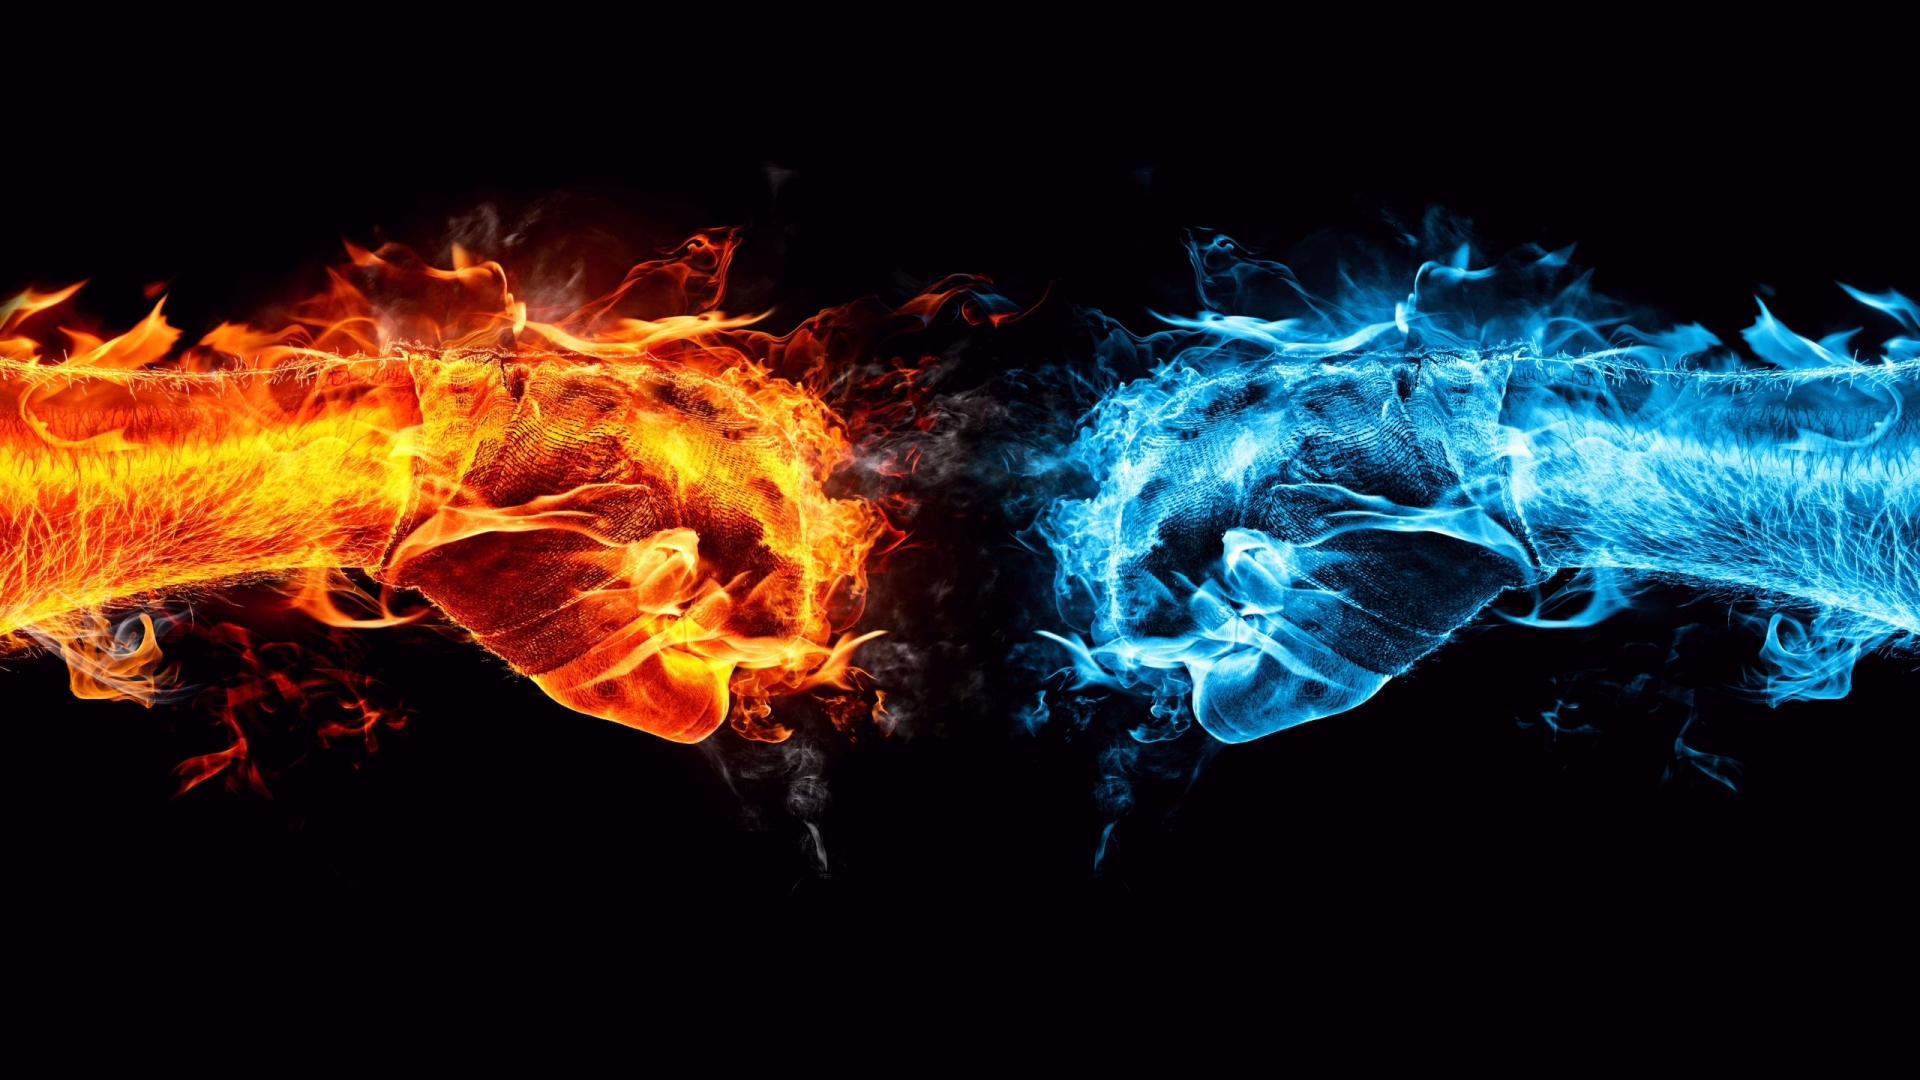 Wallpapers For Blue Fire Horse Wallpaper 1920x1080